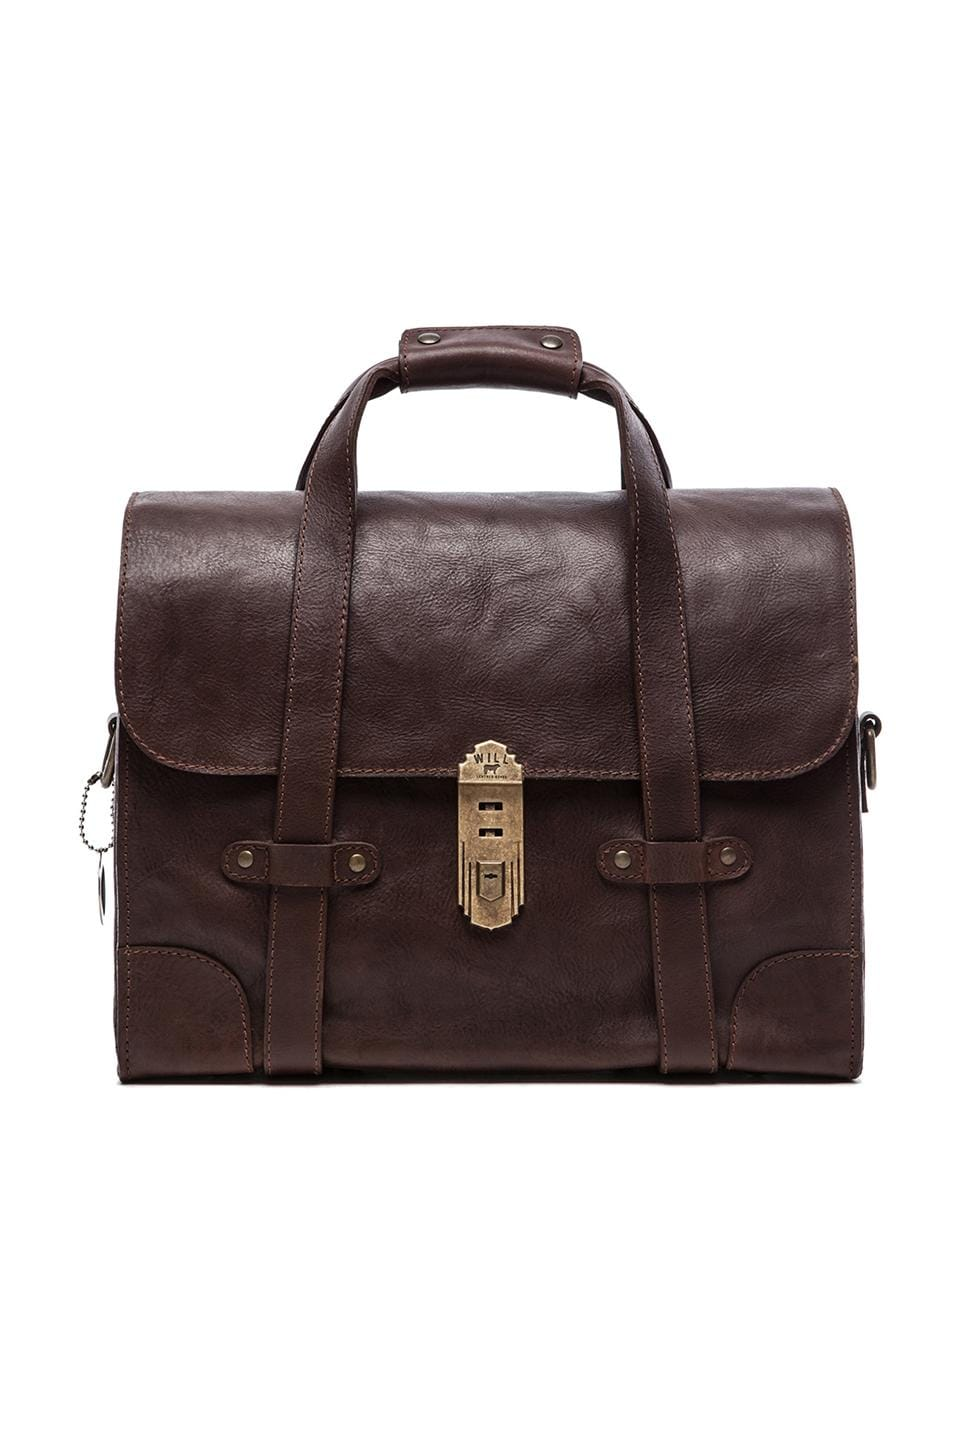 WILL Leather Goods Everett Satchel Leather Bag in Brown